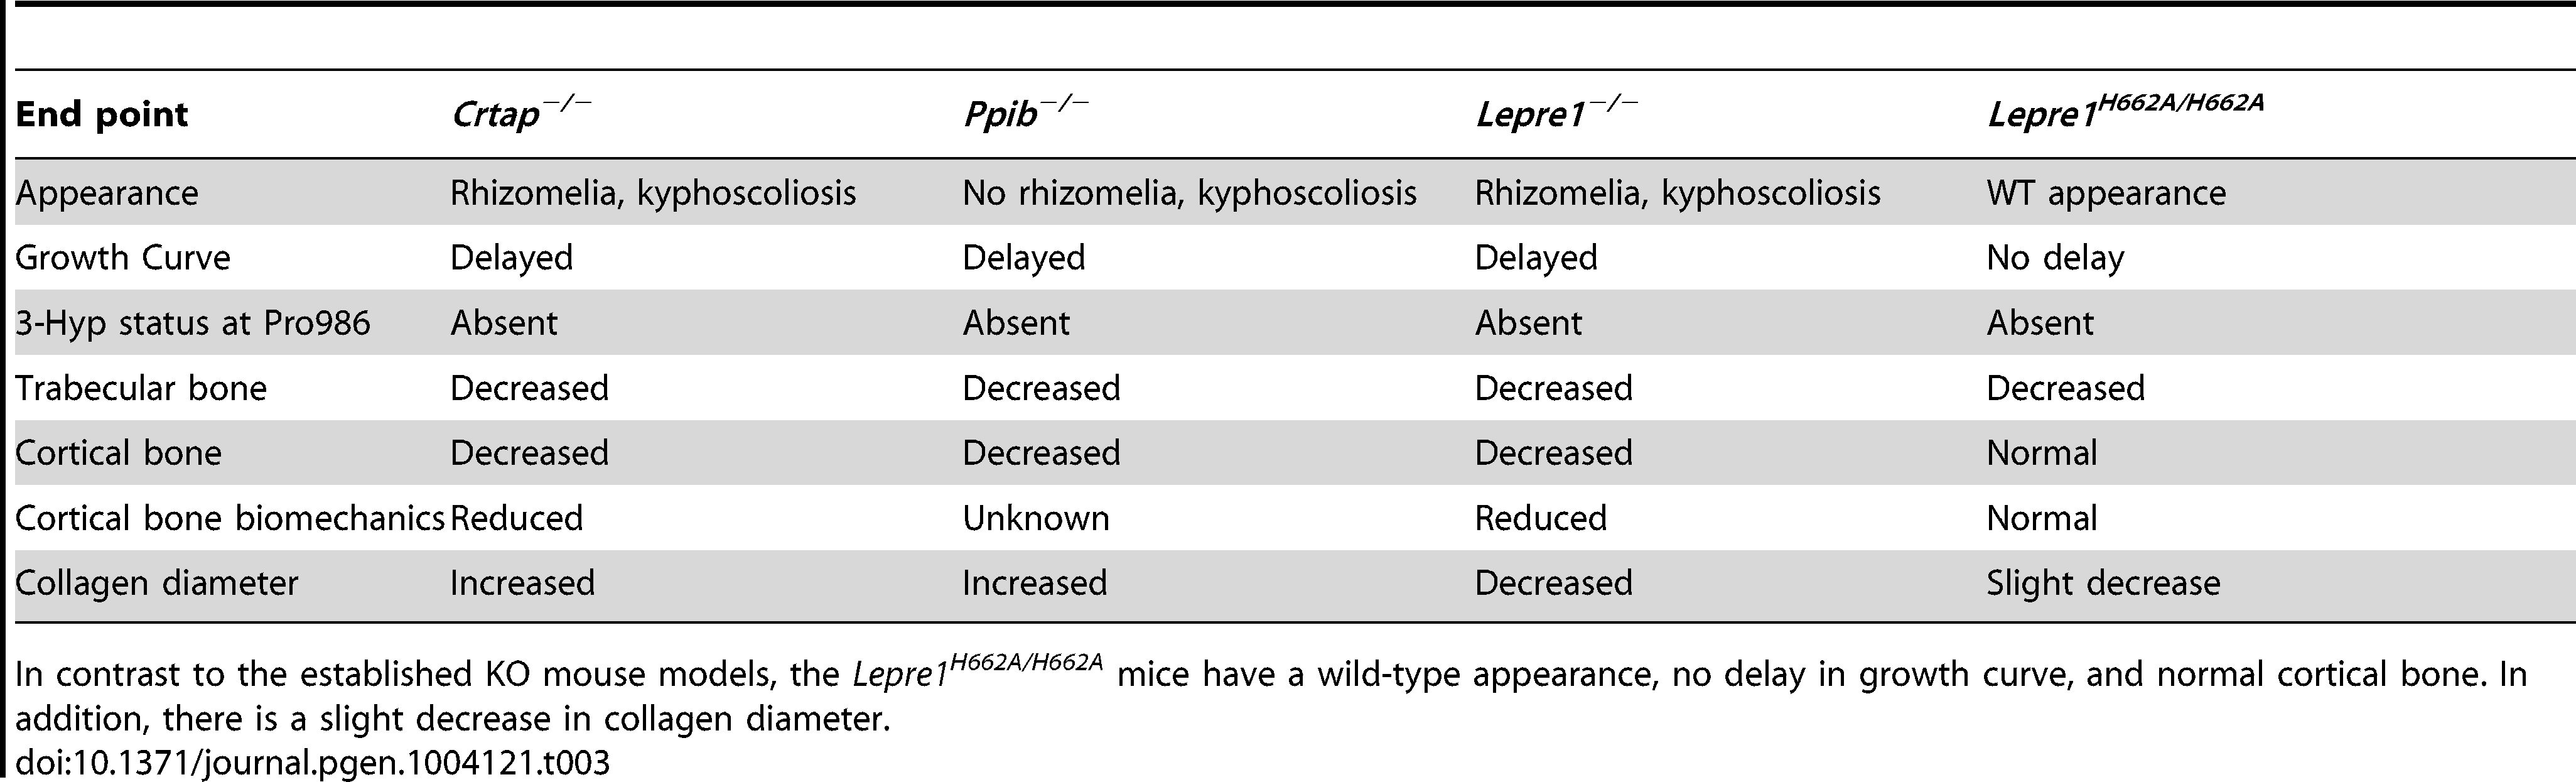 Table comparing <i>Lepre1<sup>H662A/H662A</sup></i> phenotype to established OI mouse models.